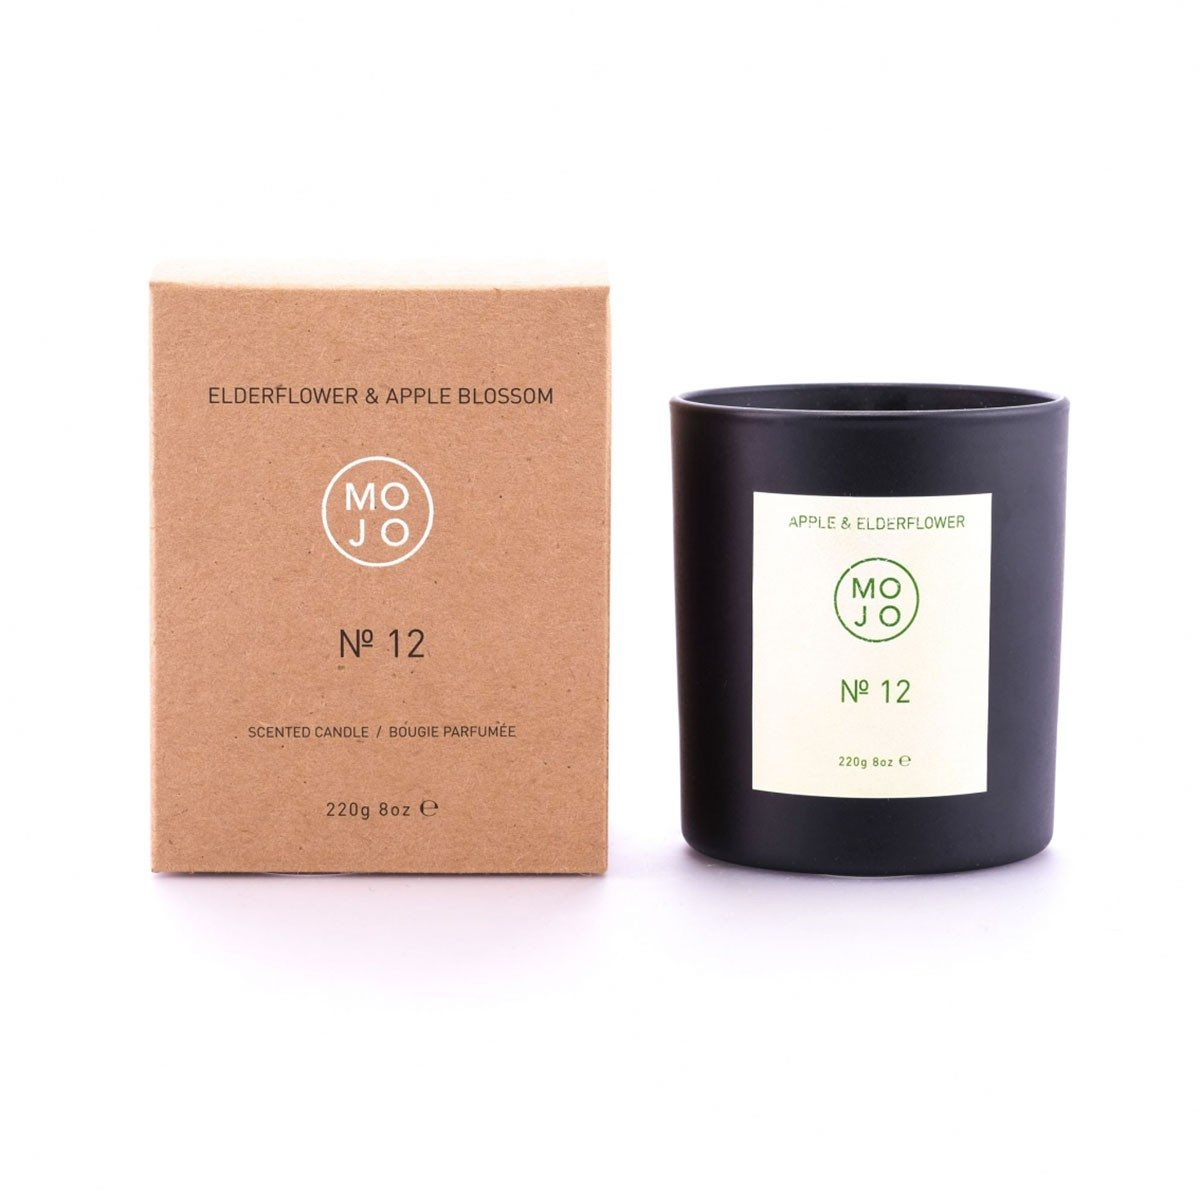 Soy Wax Candles - 220g - Elderflower & Apple Blossom